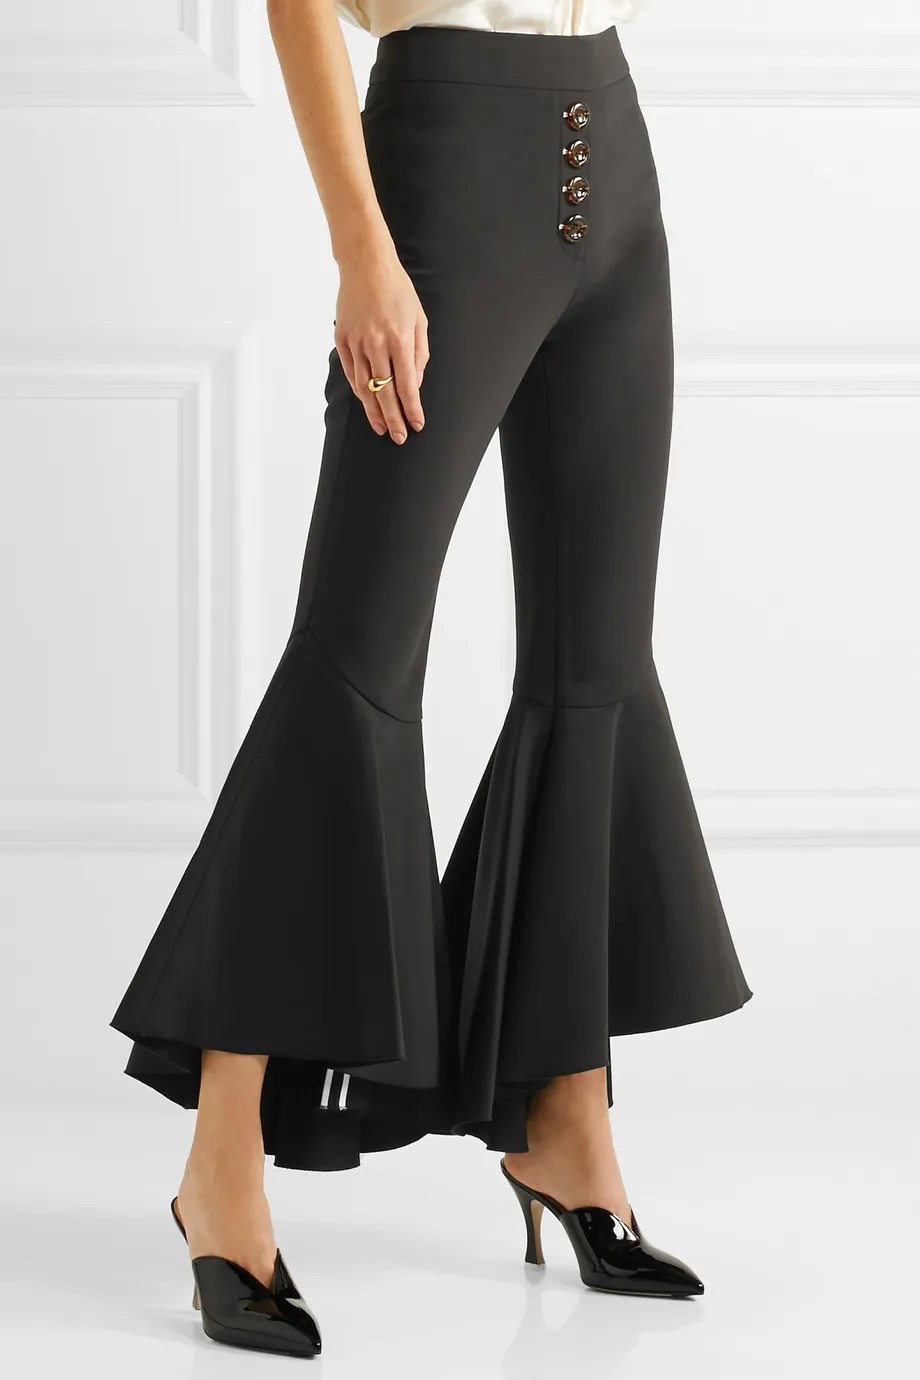 Le Meilleur 16 Things To Buy From Net A Porter S Spring Sale Ce Mois Ci